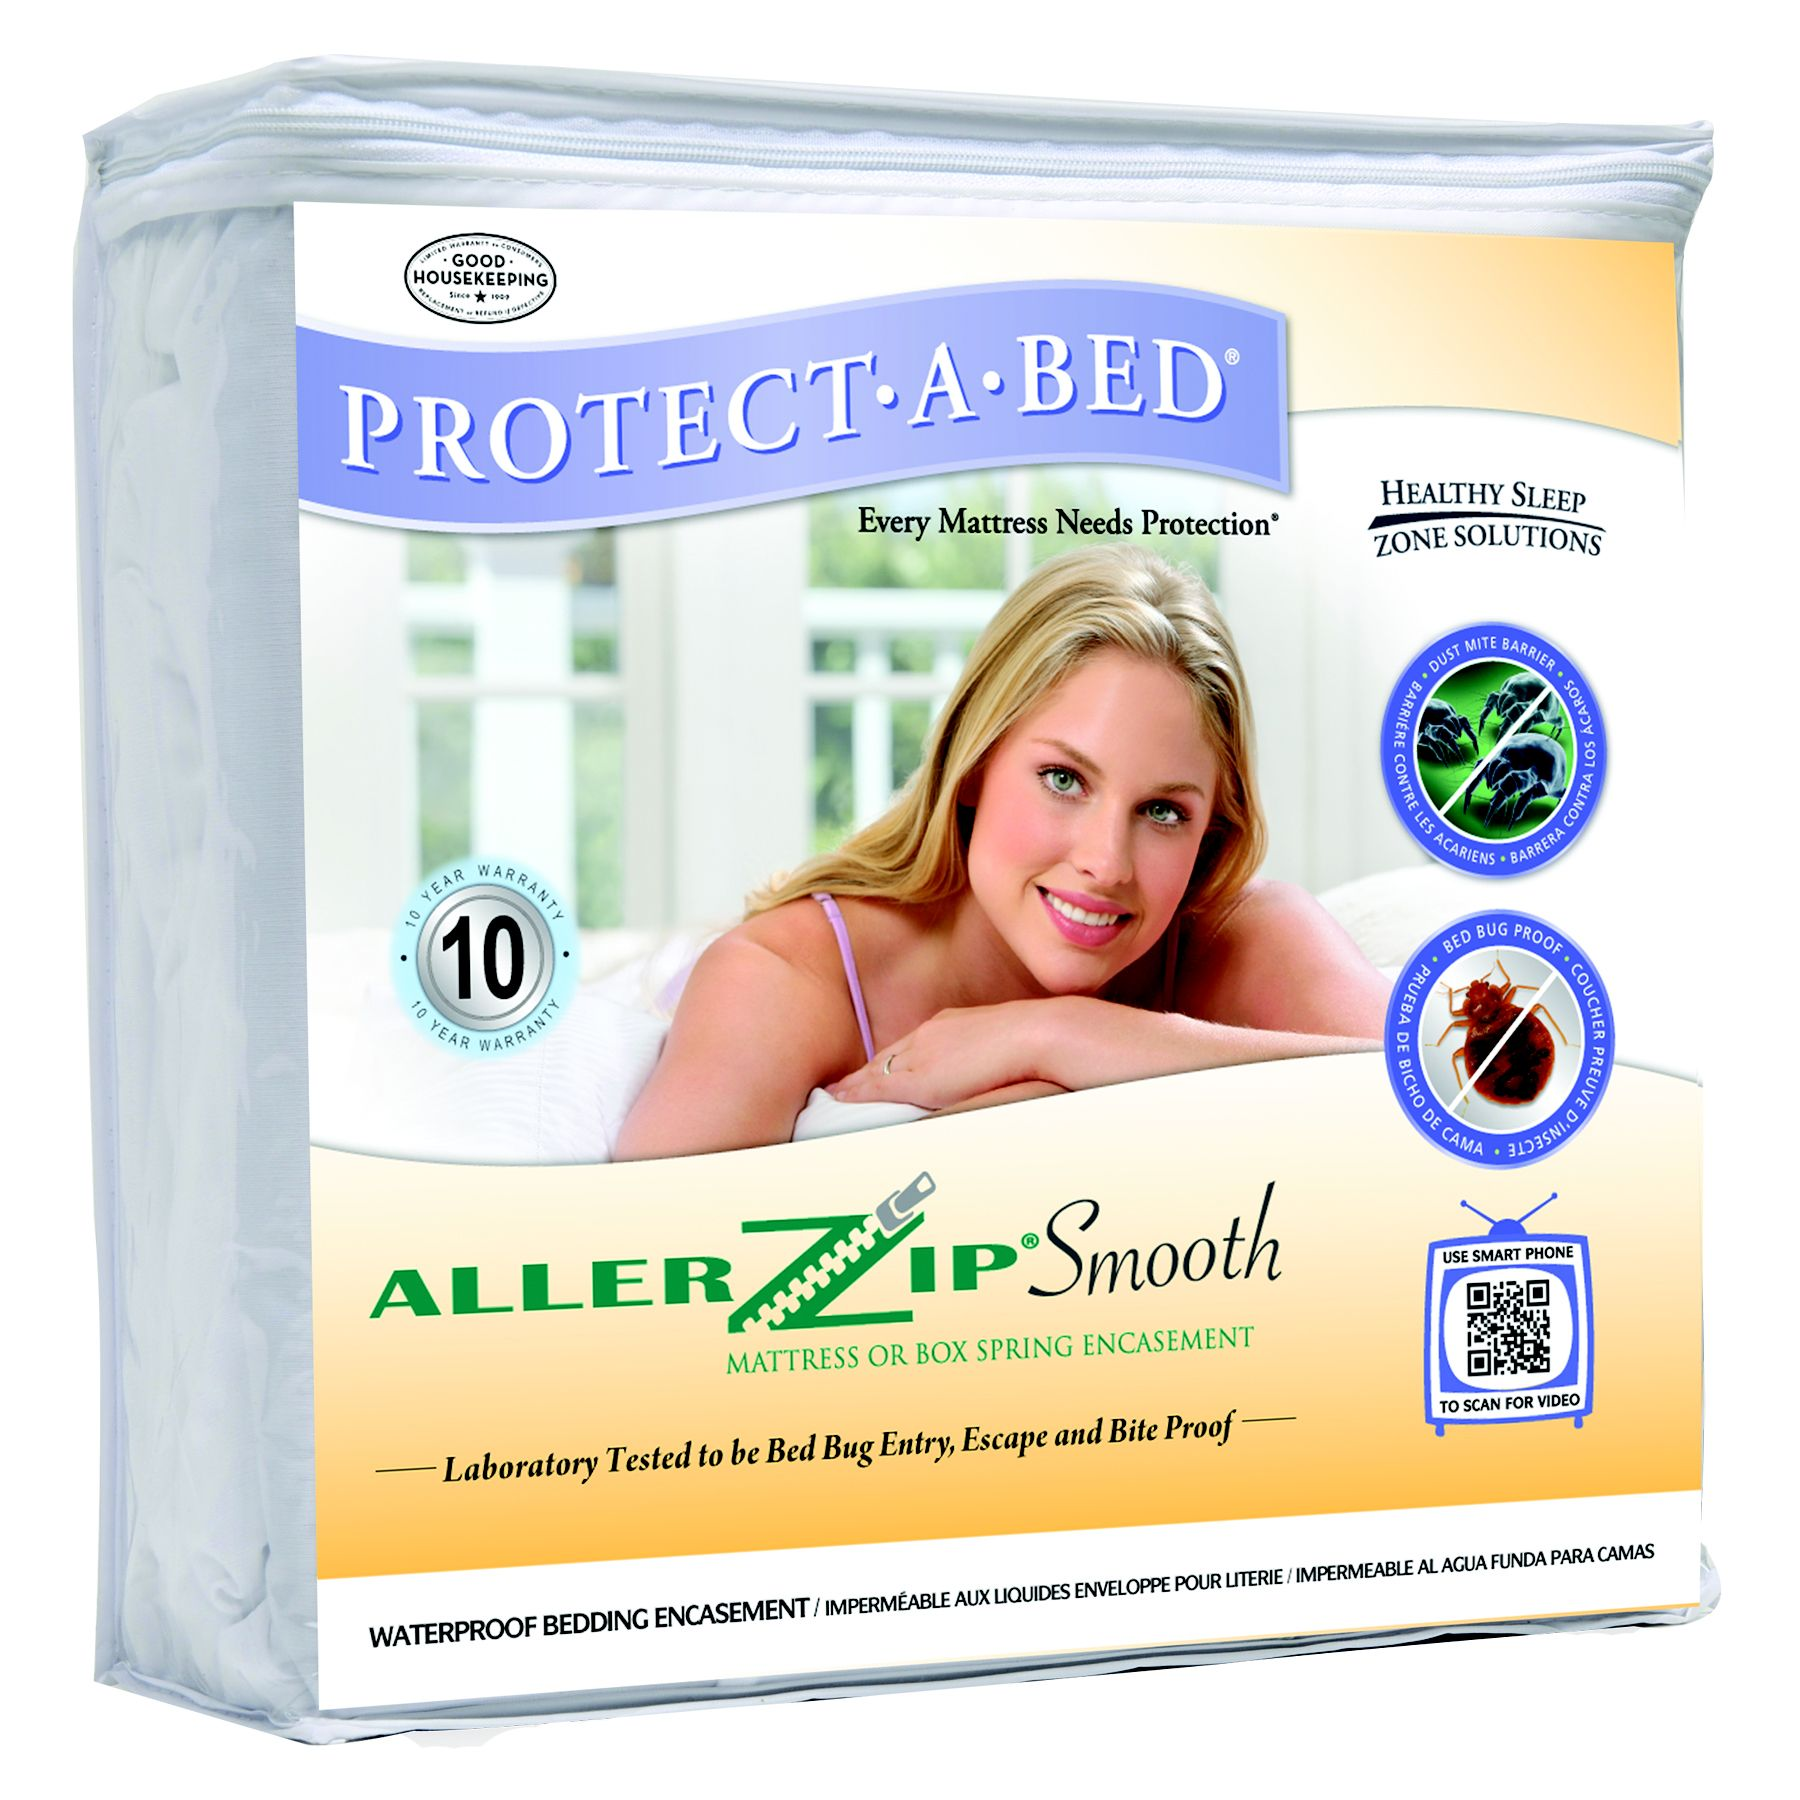 ALLER ZIP (Smooth) Mattress or Box Spring Encasement